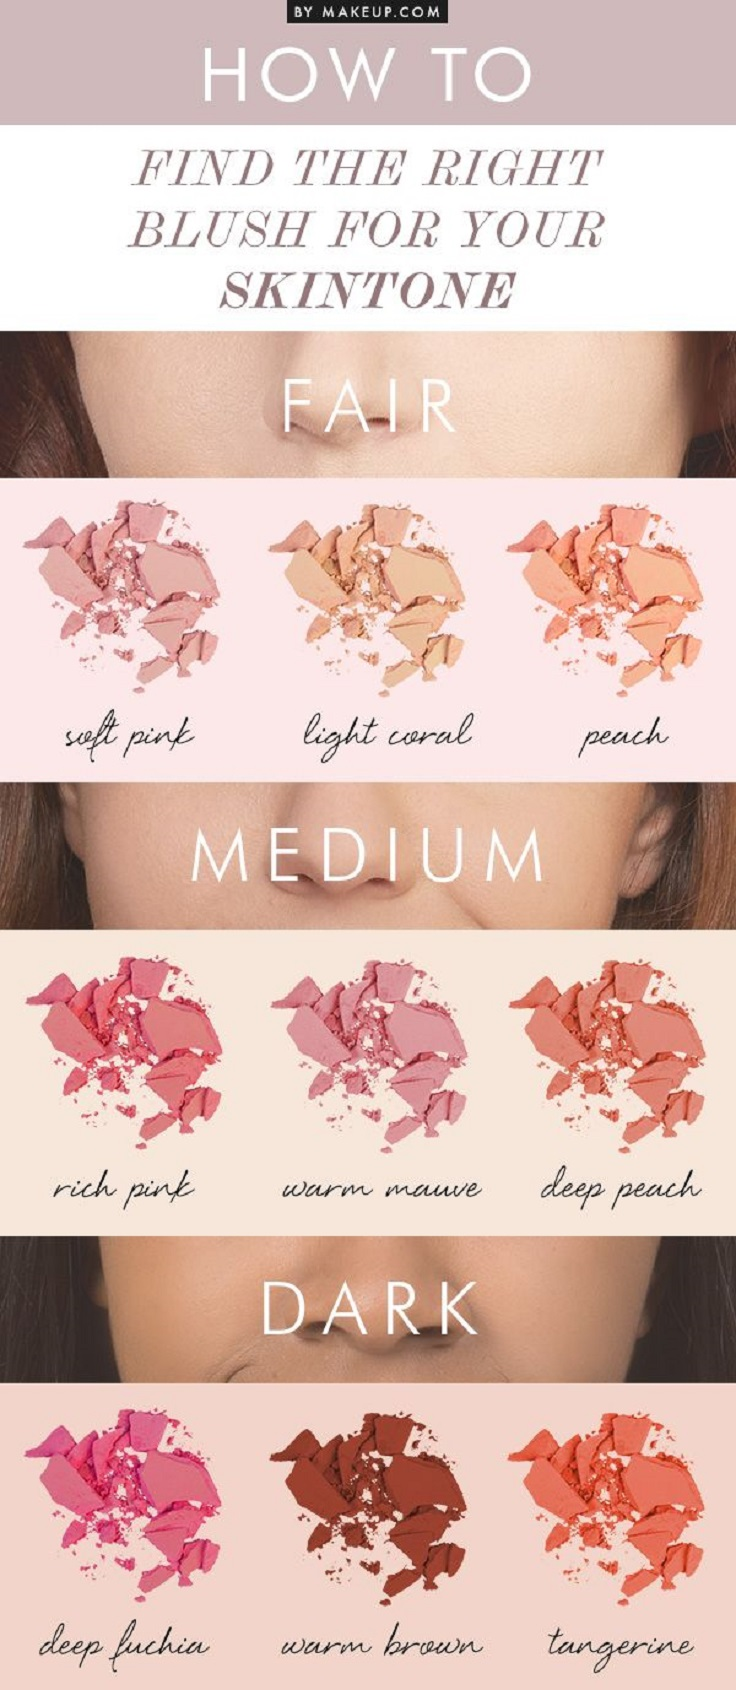 Find-The-Right-Blush-for-Your-Skintone